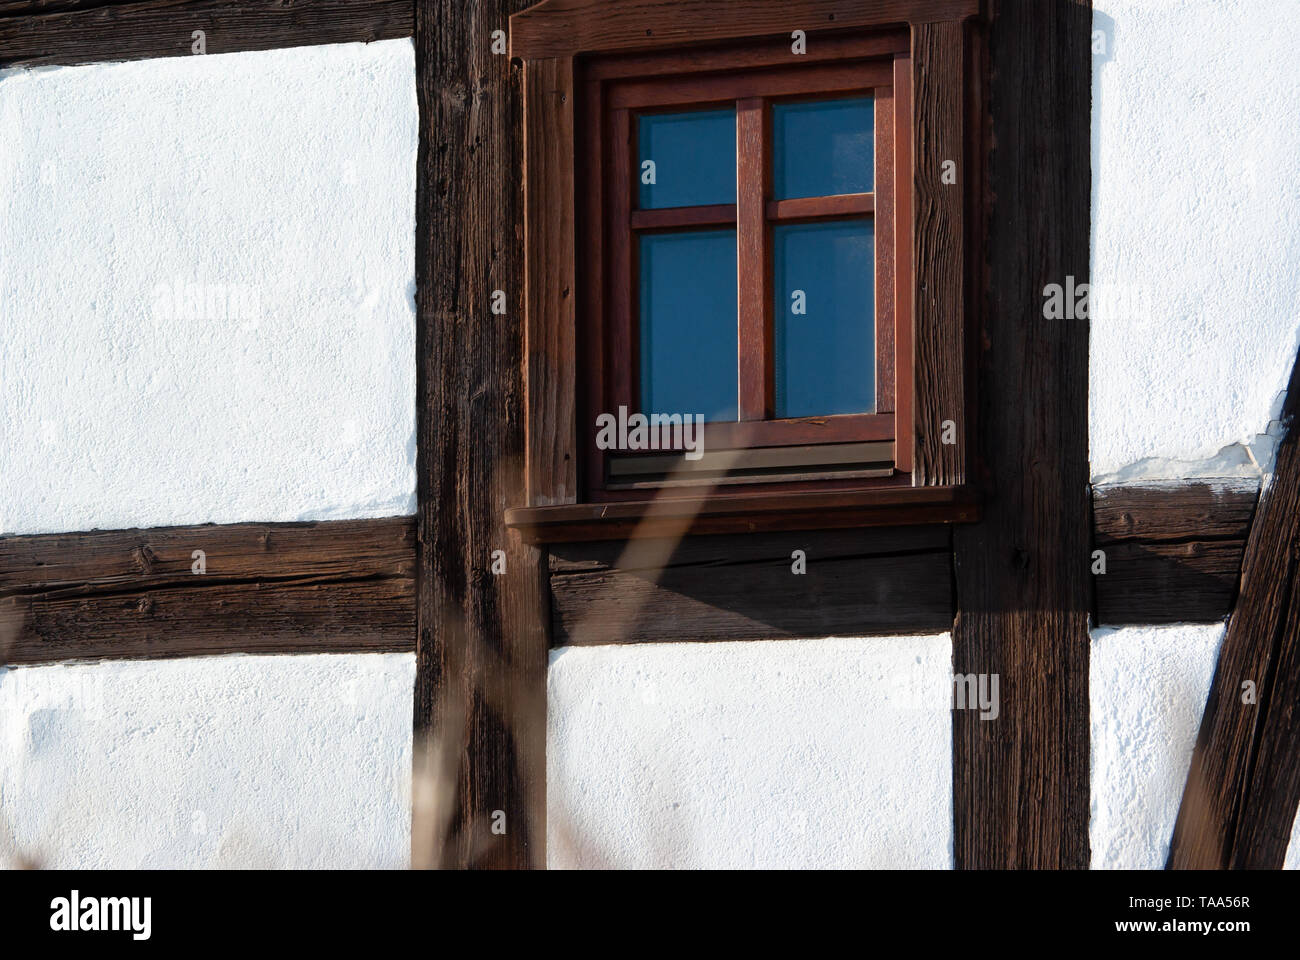 window of a restored Upper Lusatian timber frame house in Neundorf a.d. Eigen, Saxony/Germany - Stock Image